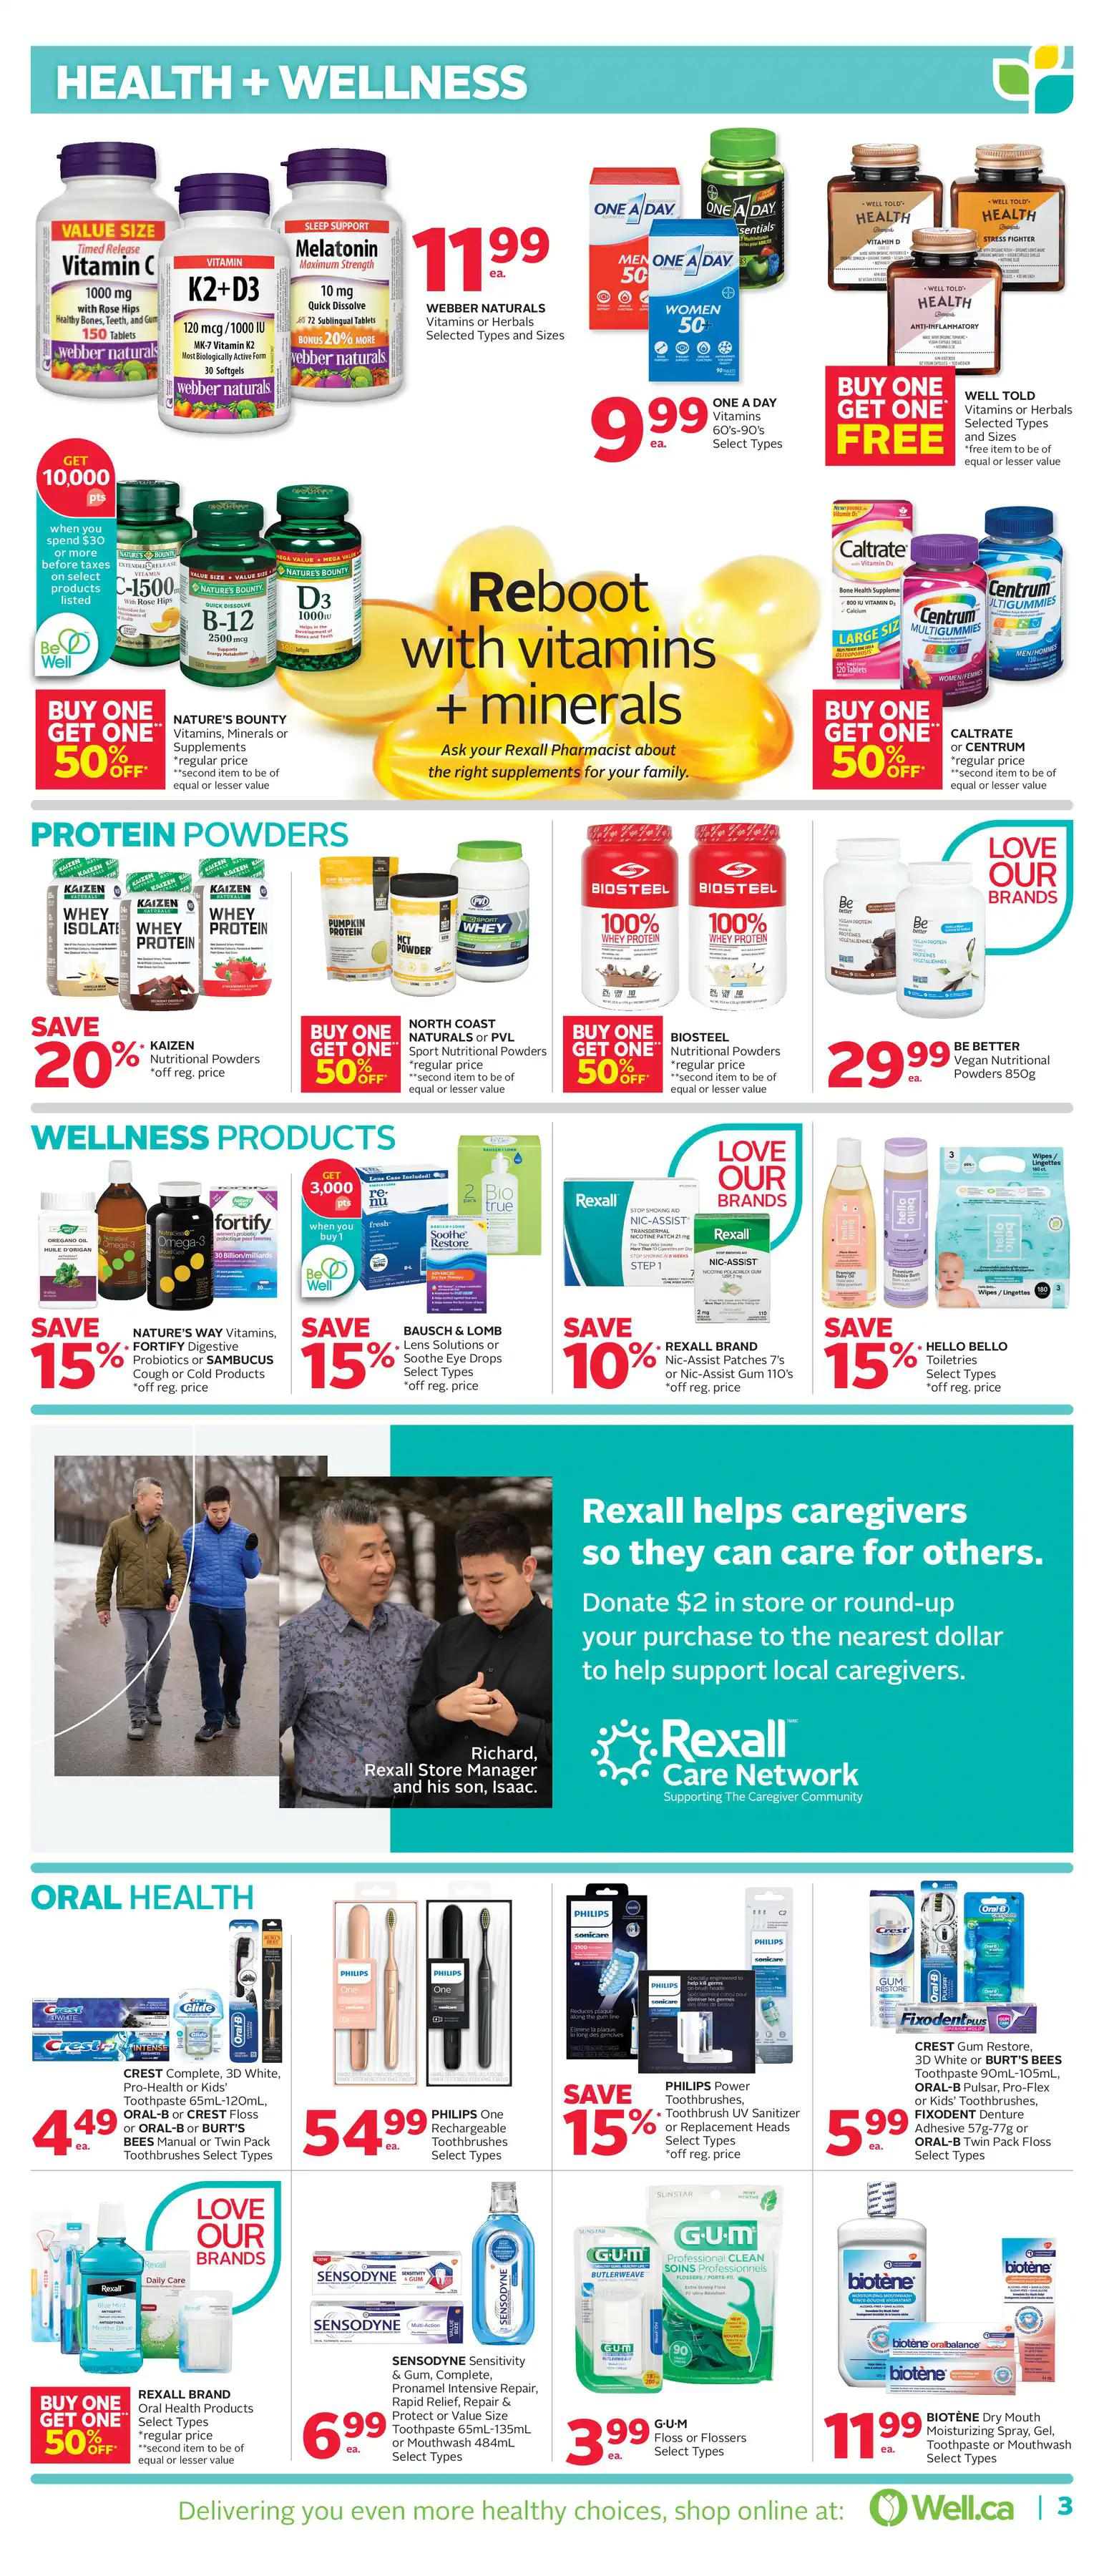 Rexall - Weekly Flyer Specials - Page 6